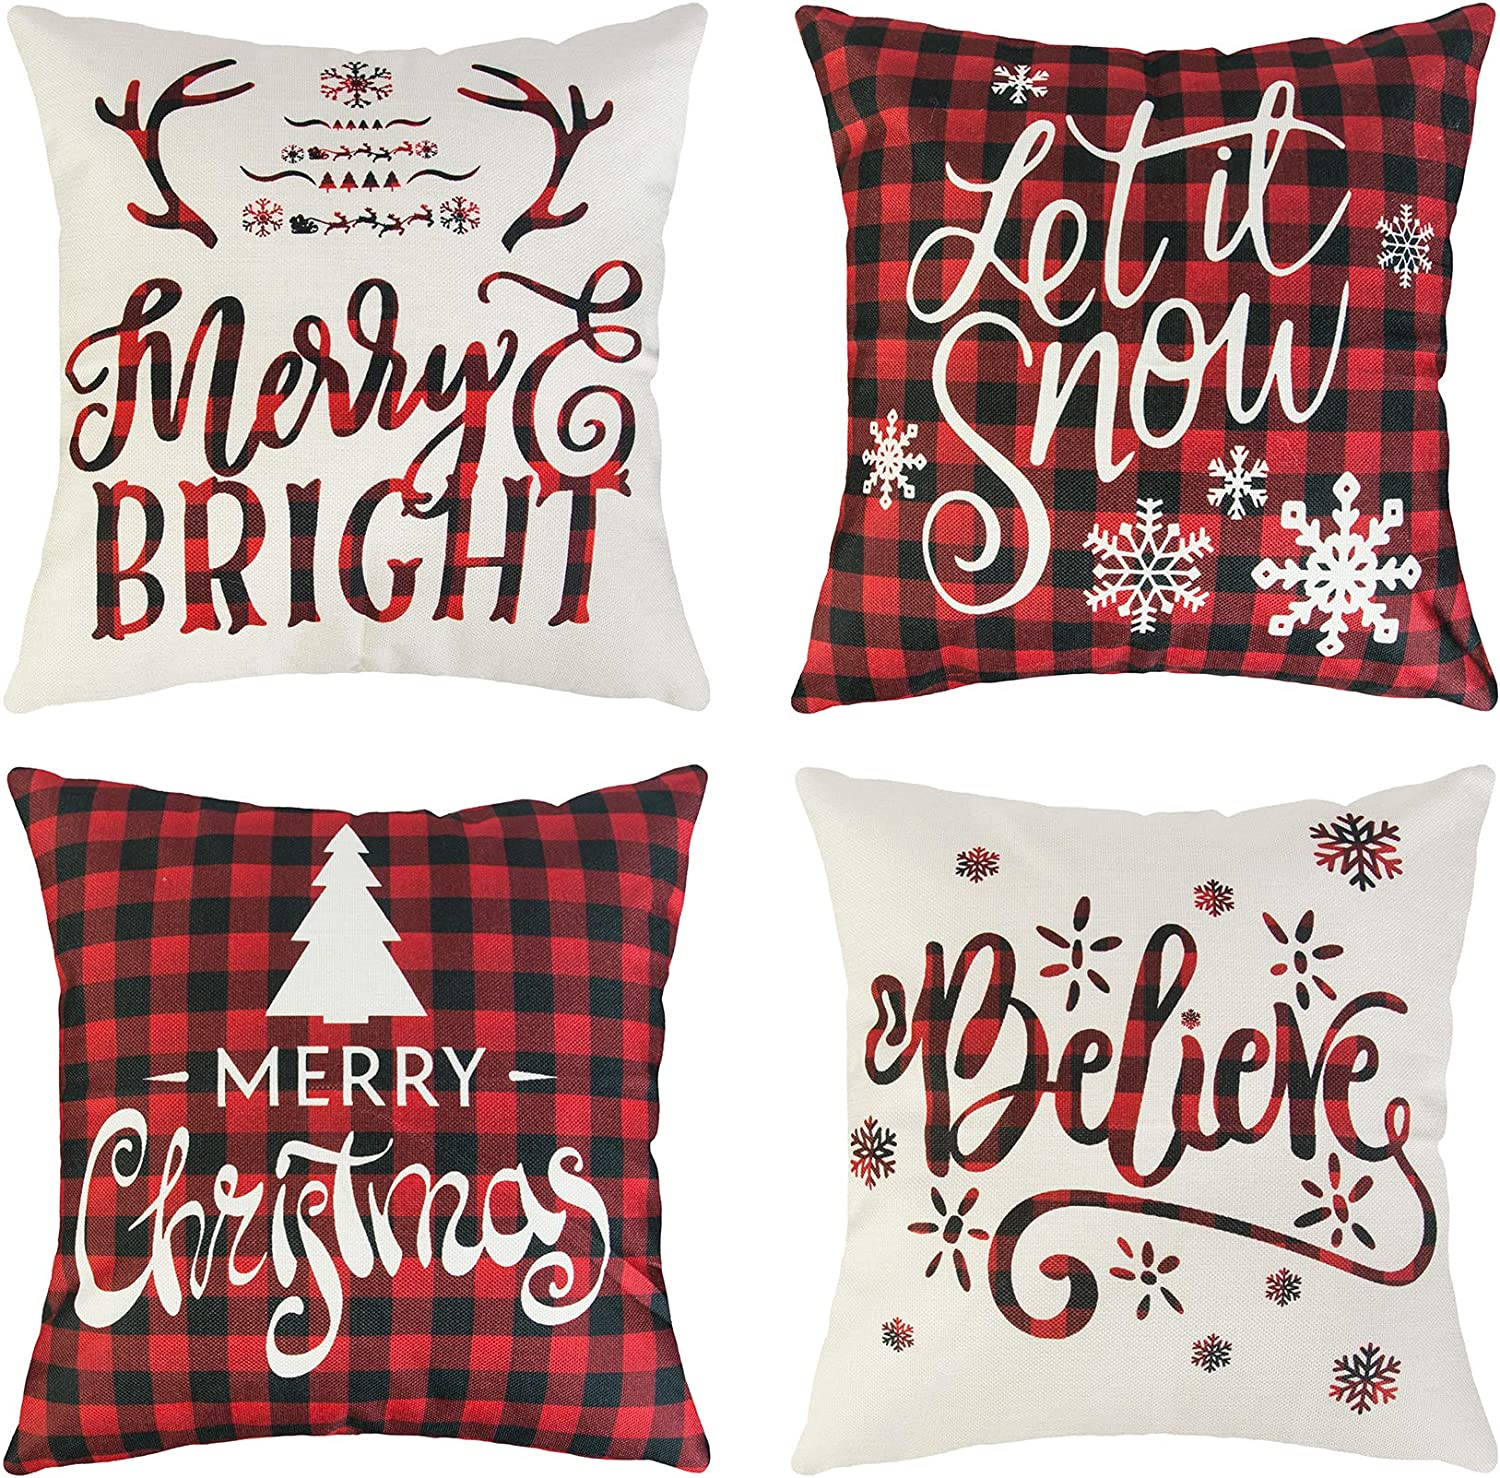 Merry Christmas on Snowflake Pillow Cover 18 x 18